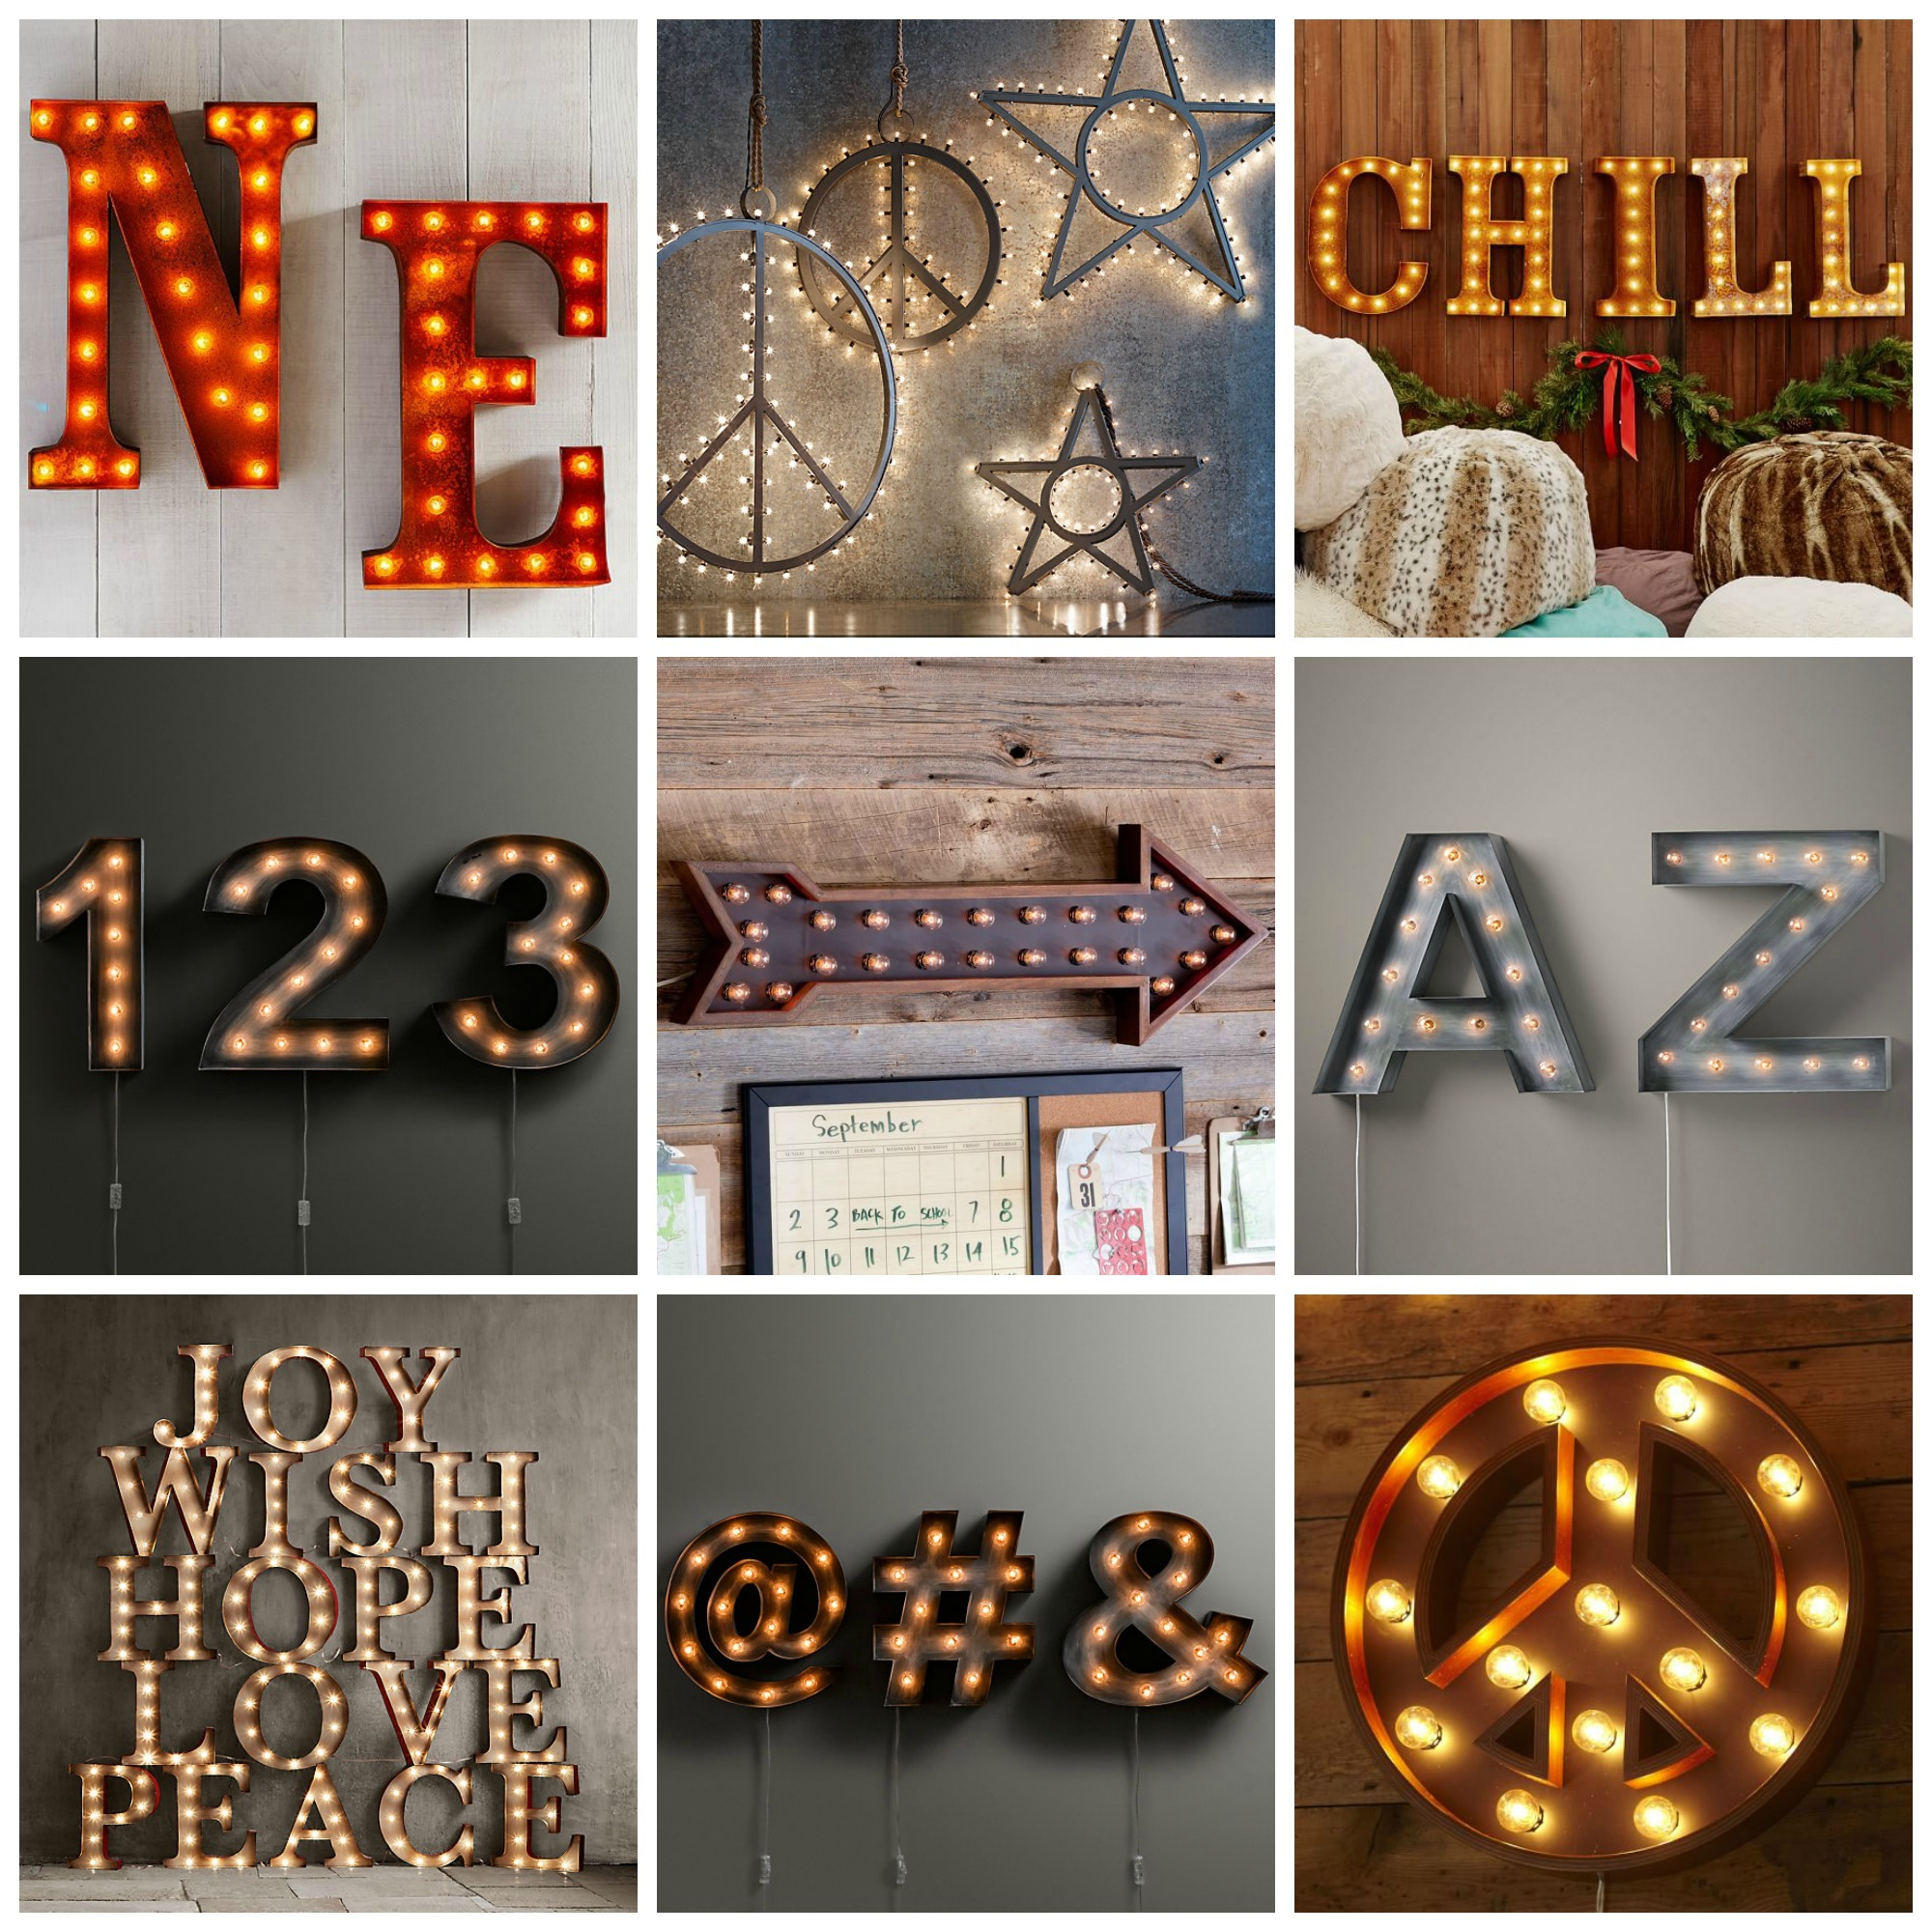 Restoration Hardware Marquee Signs, Retail for $149-$299